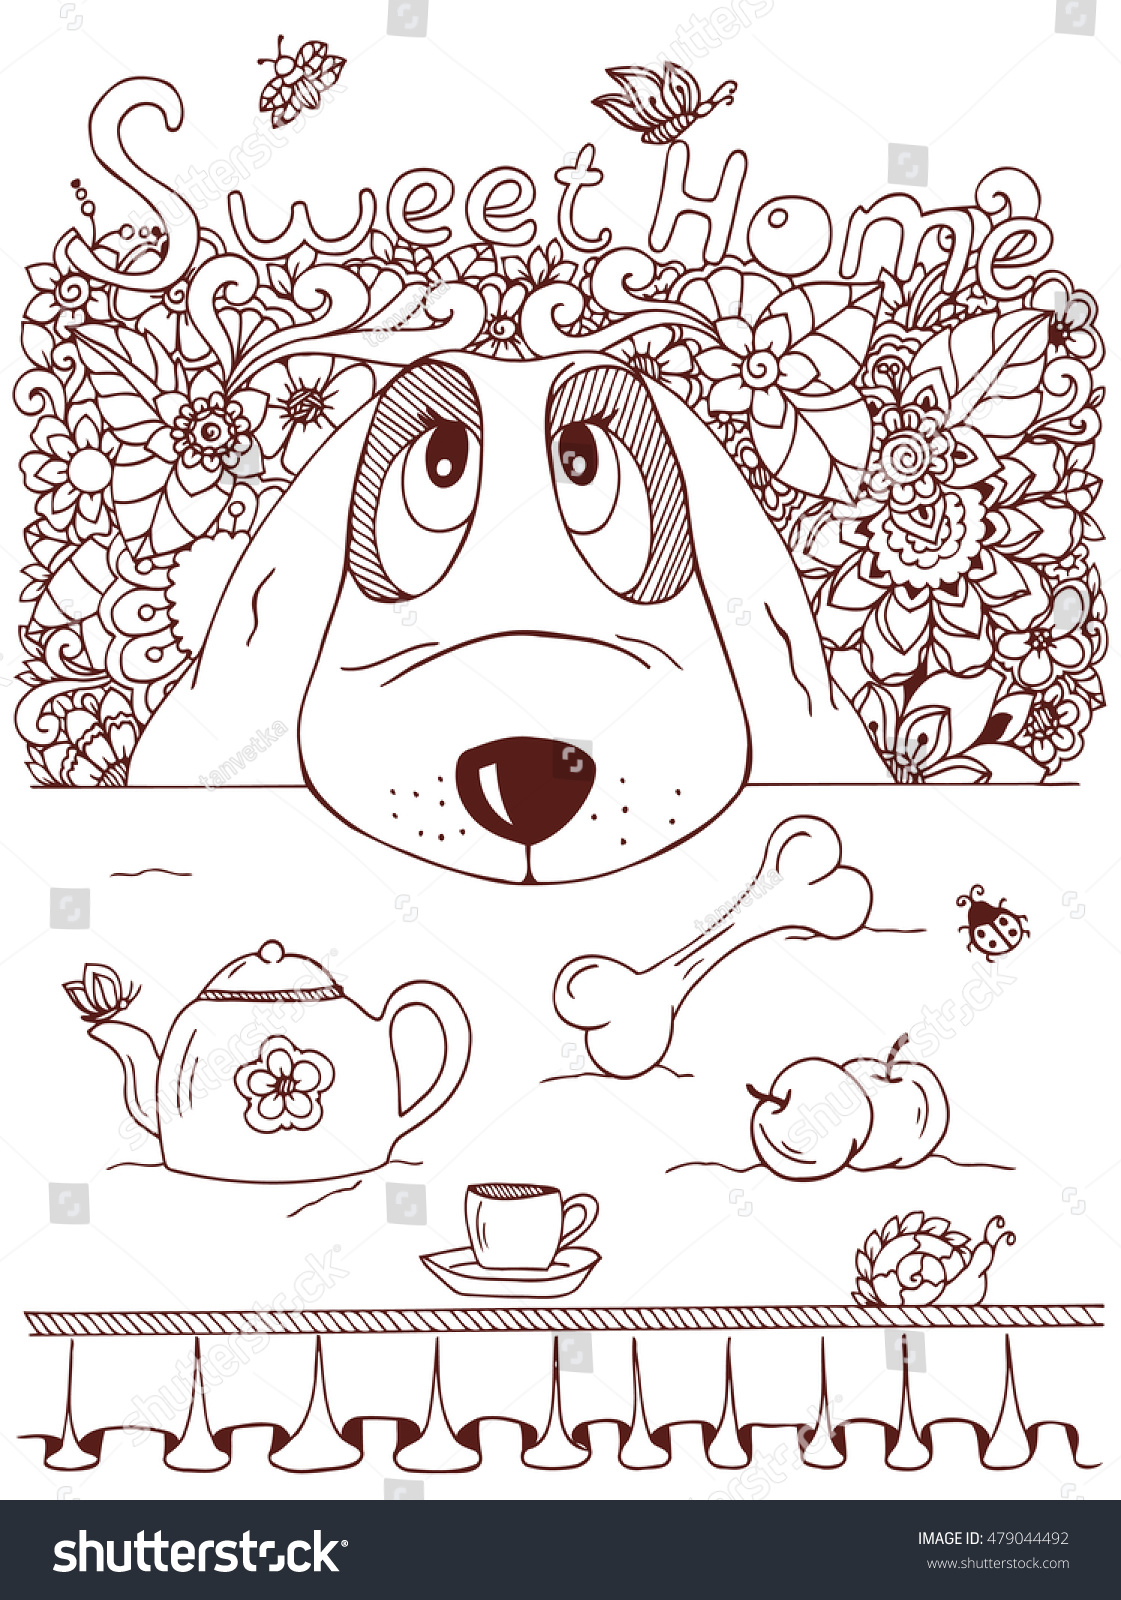 Coloring book kitchen - Vector Illustration Zentangl Dog And Kitchen Table Doodle Flowers Meditative Exercise Coloring